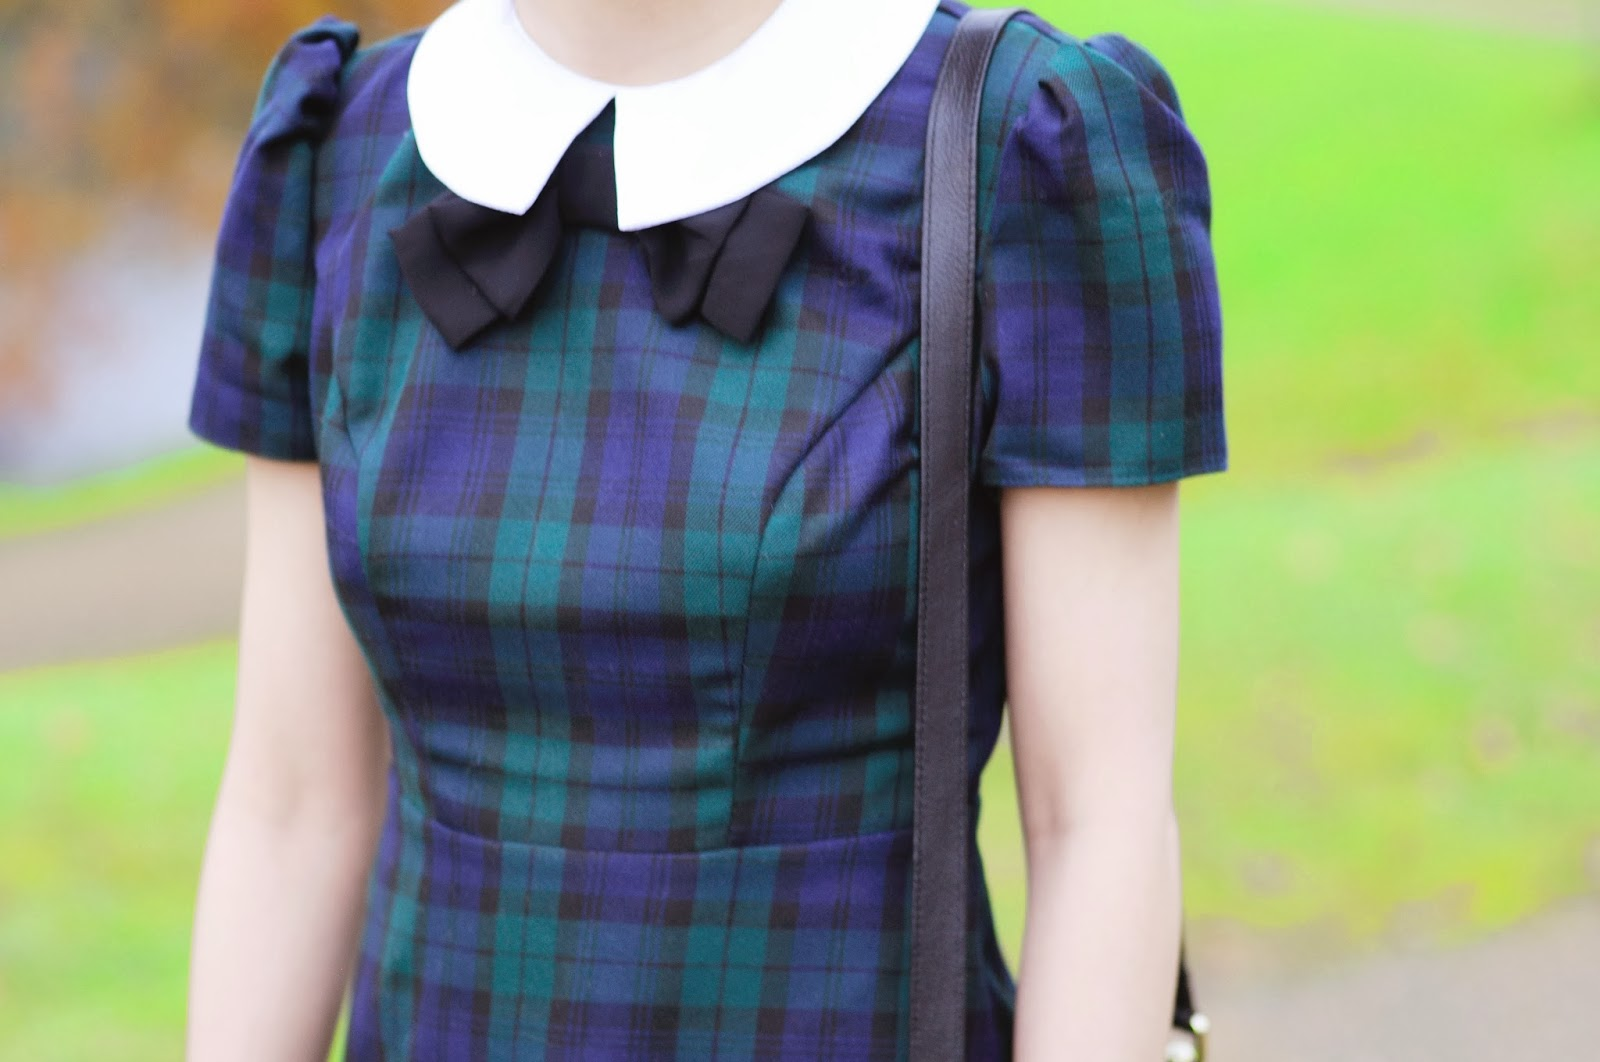 Tartan dress from Primark